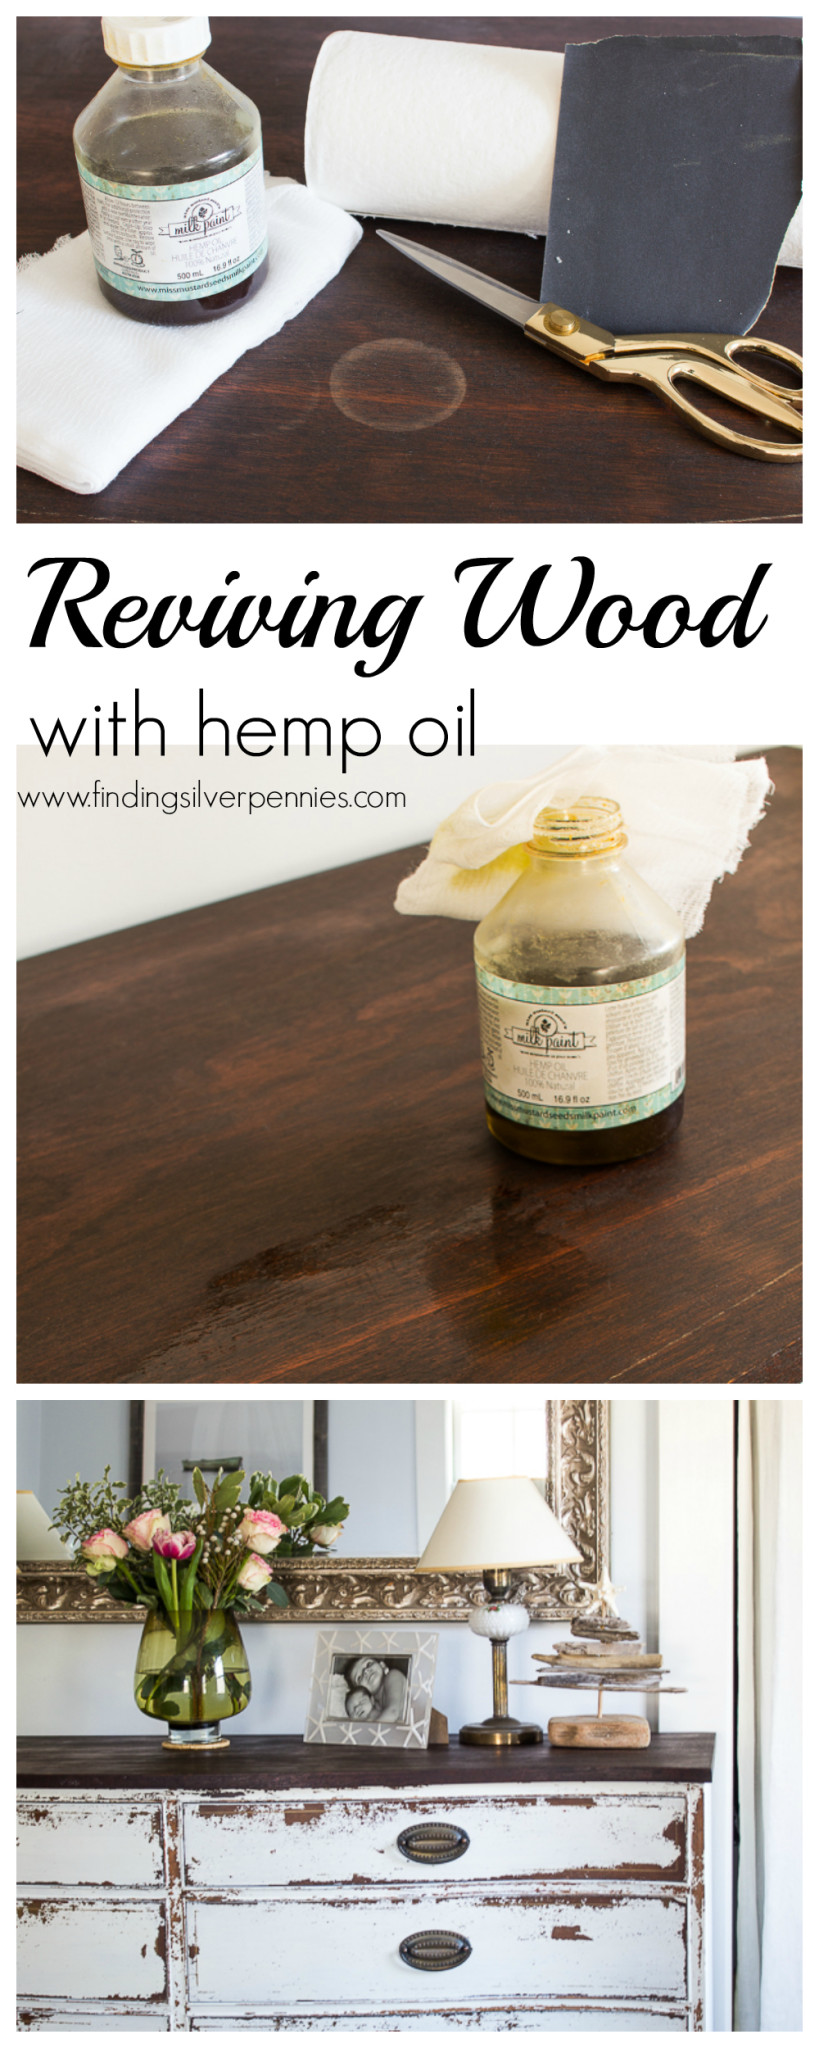 How to Revive Wood With Hemp Oil